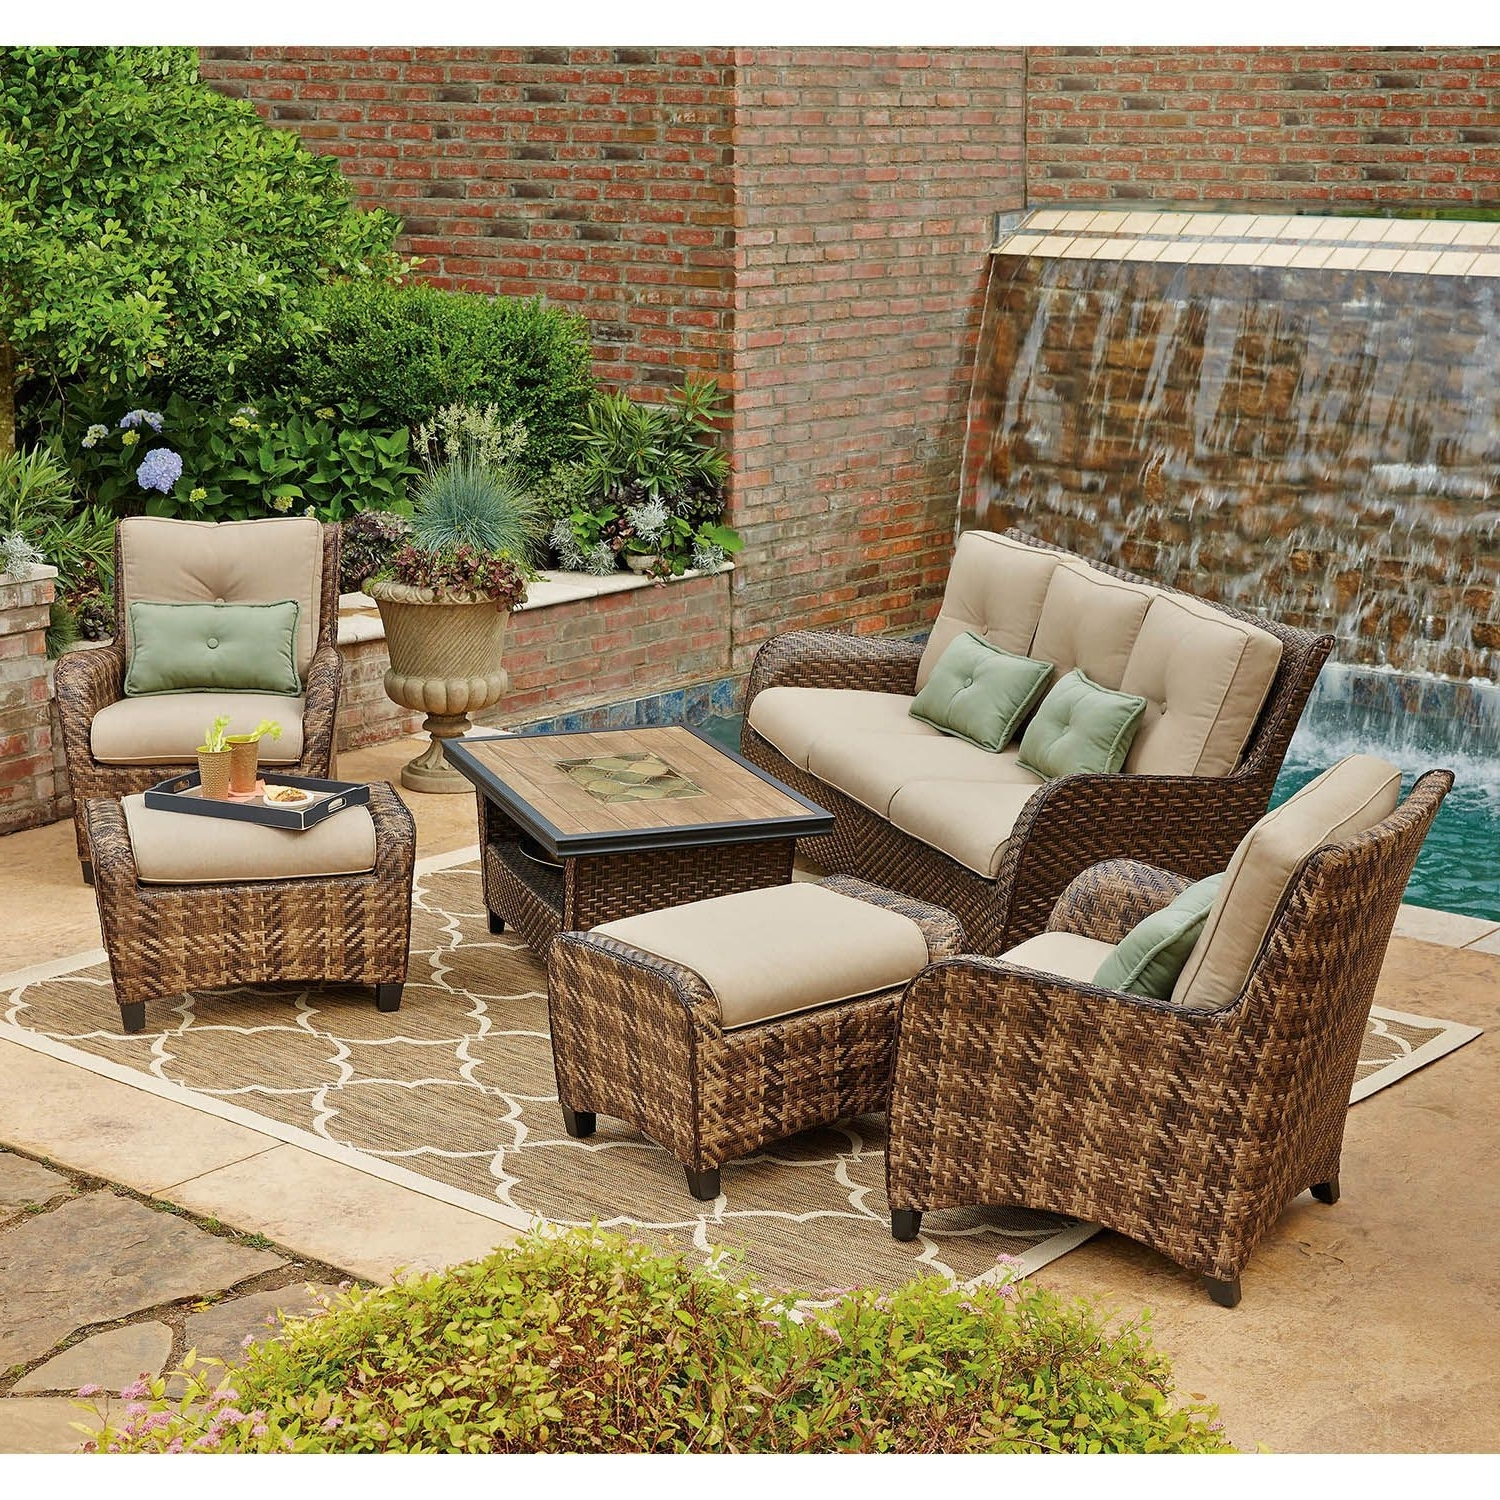 Patio Design Central For Kohl's Patio Conversation Sets (View 13 of 20)